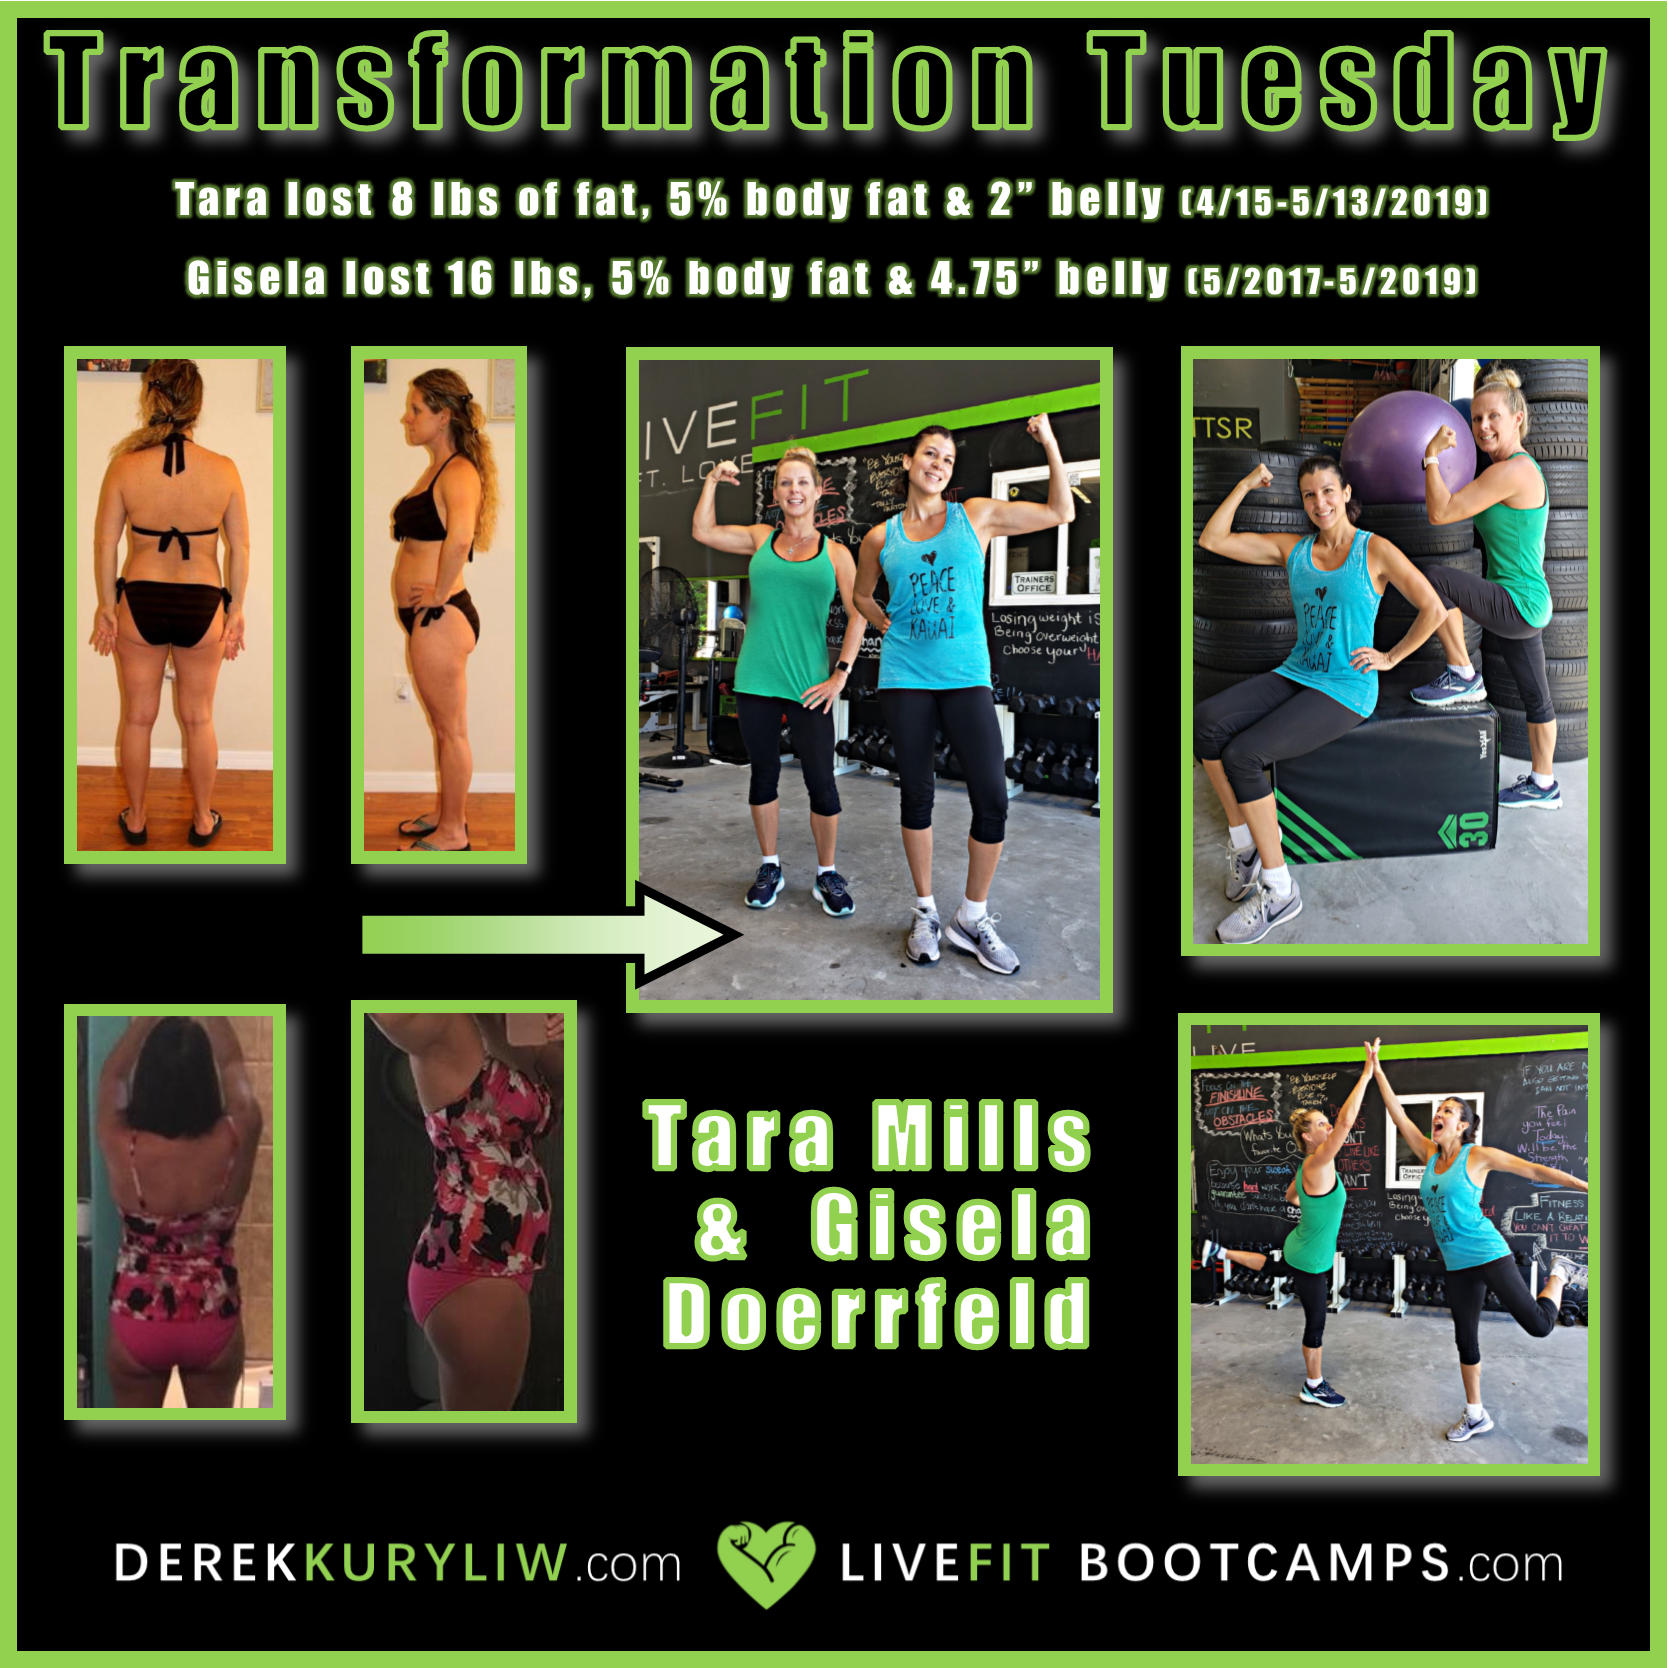 Gisela Tara transformation tuesday mom fitness white